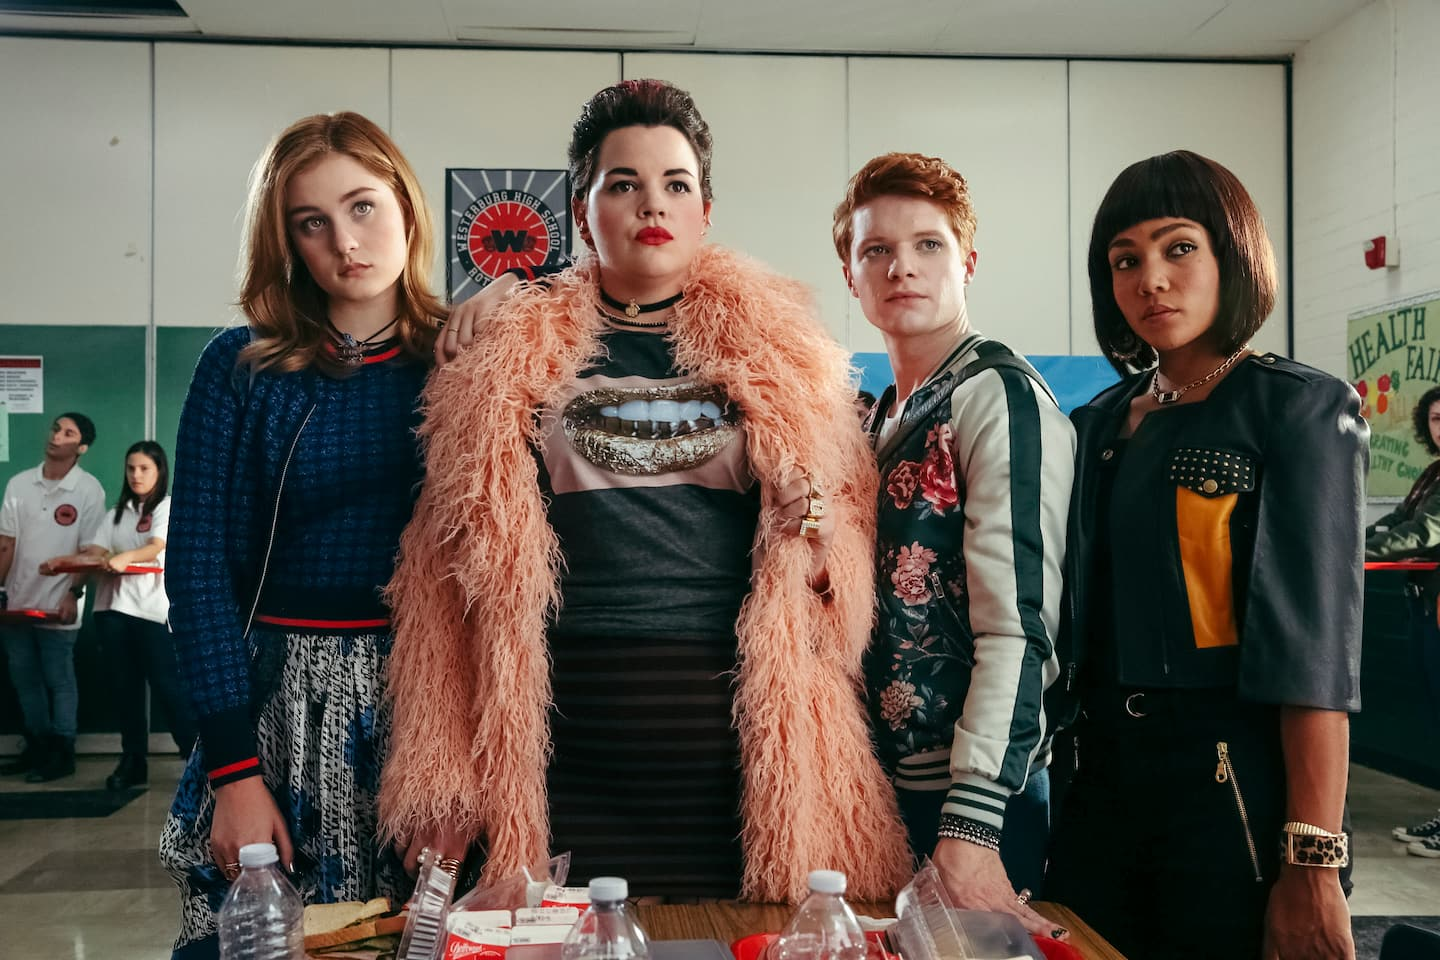 The troubled journey of 'Heathers,' the TV reboot repeatedly postponed in the wake of mass shootings